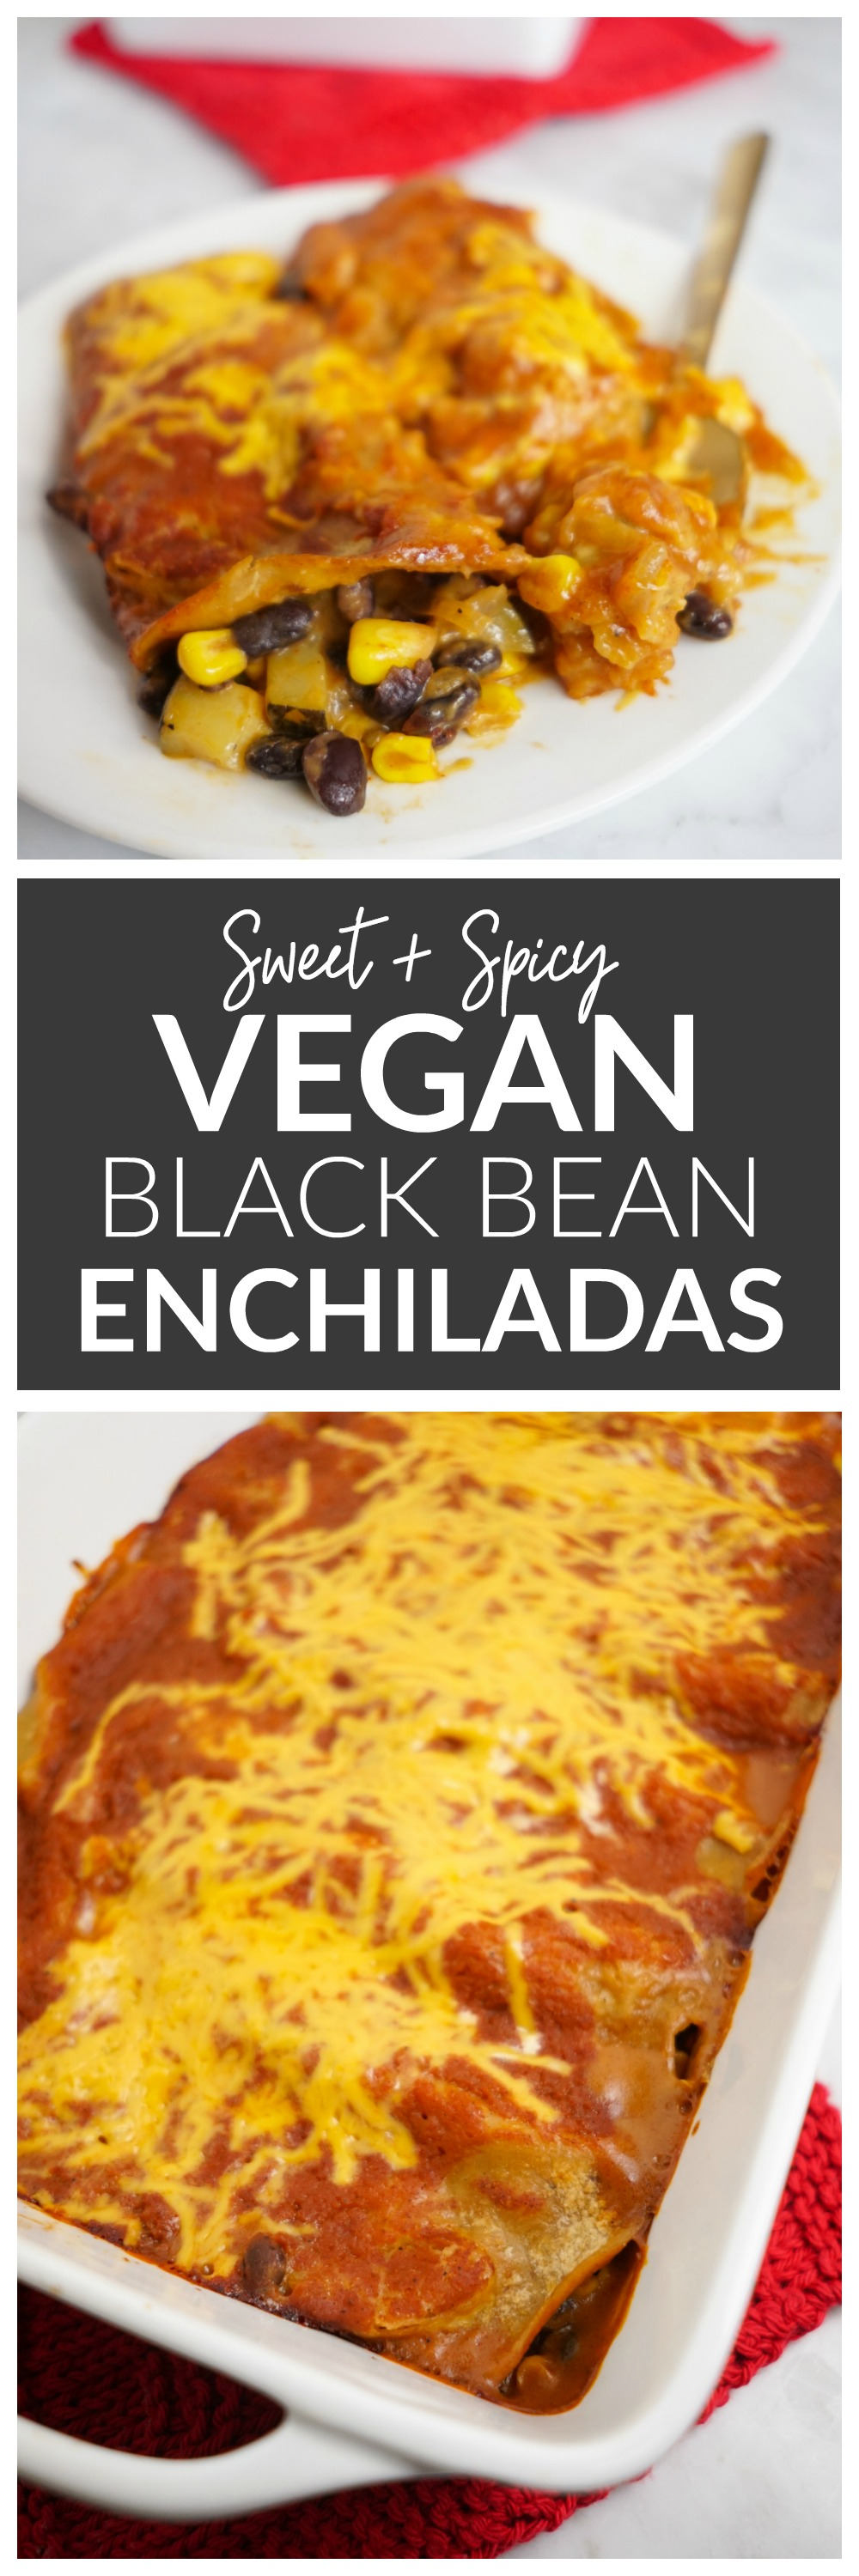 Sweet N' Spicy Vegan Black Bean Enchiladas with a peach enchilada sauce